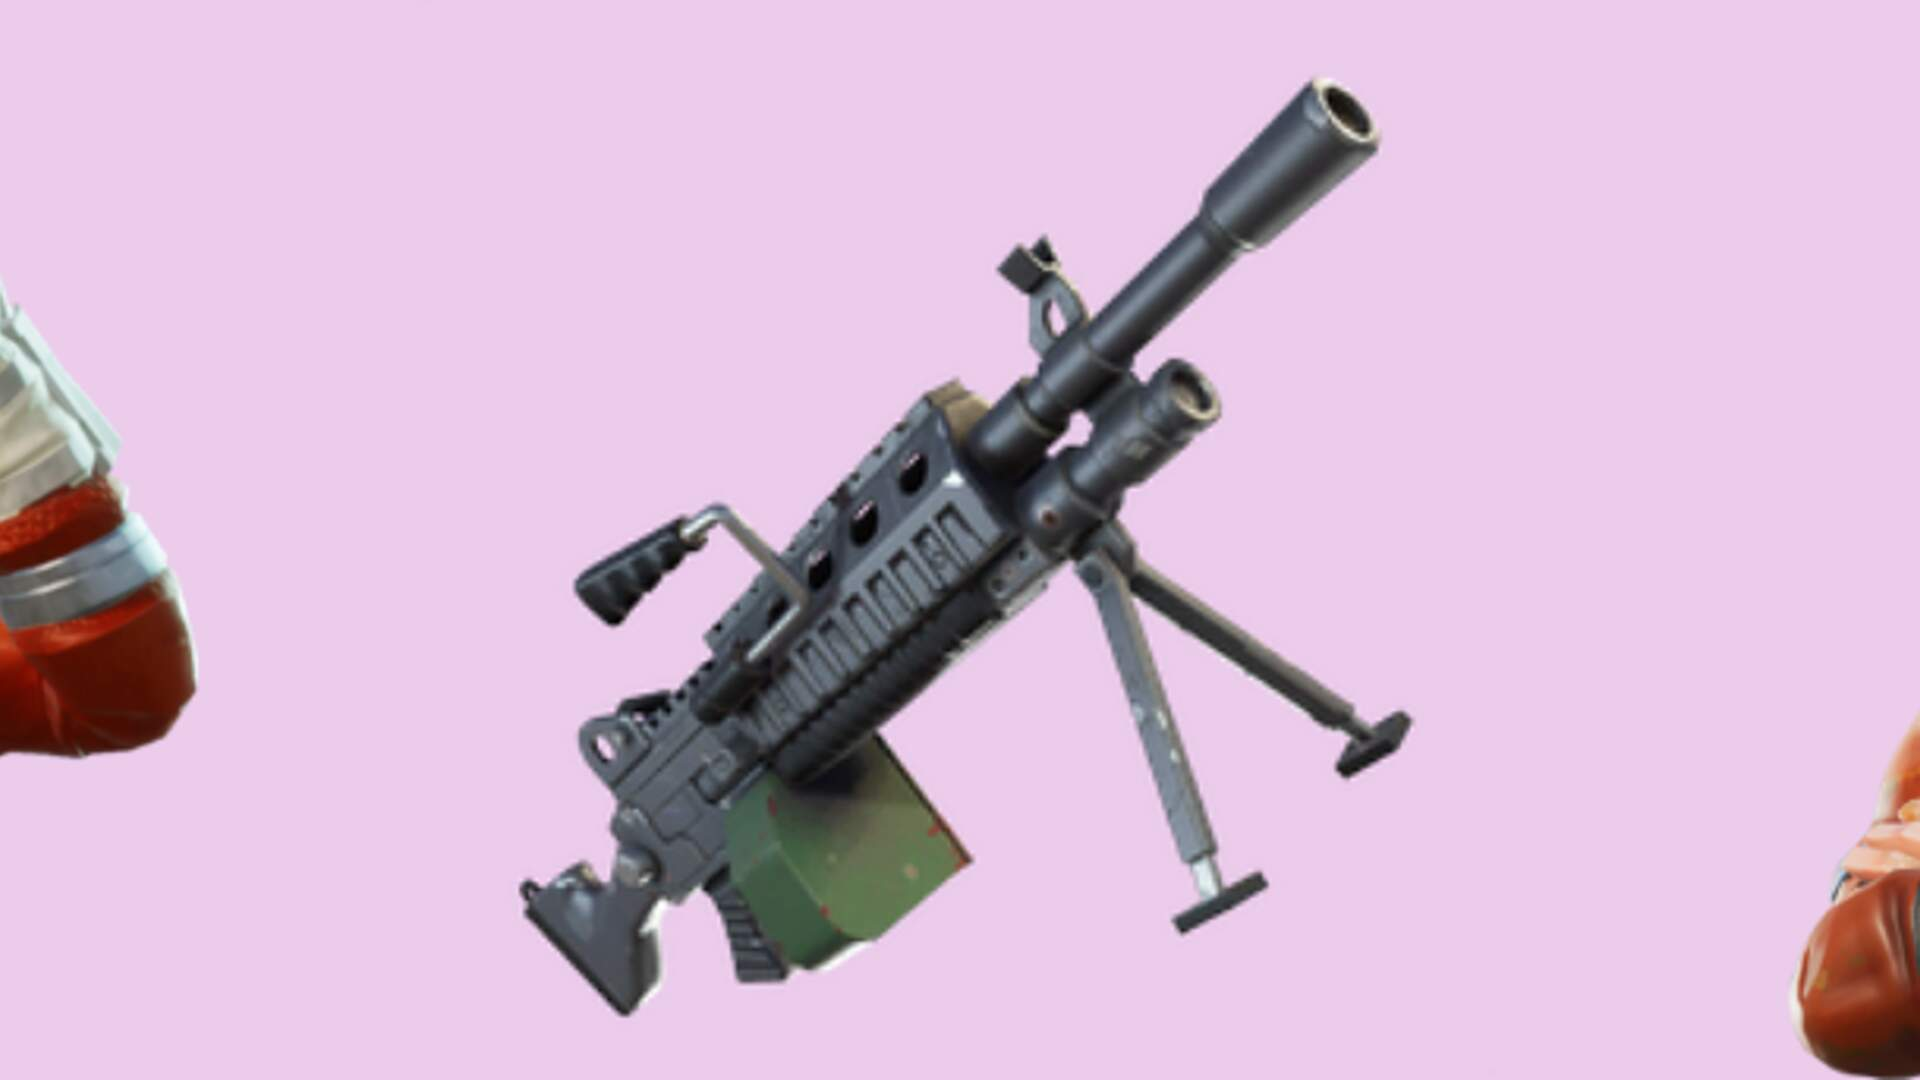 New Fortnite LMG out now for Battle Royale